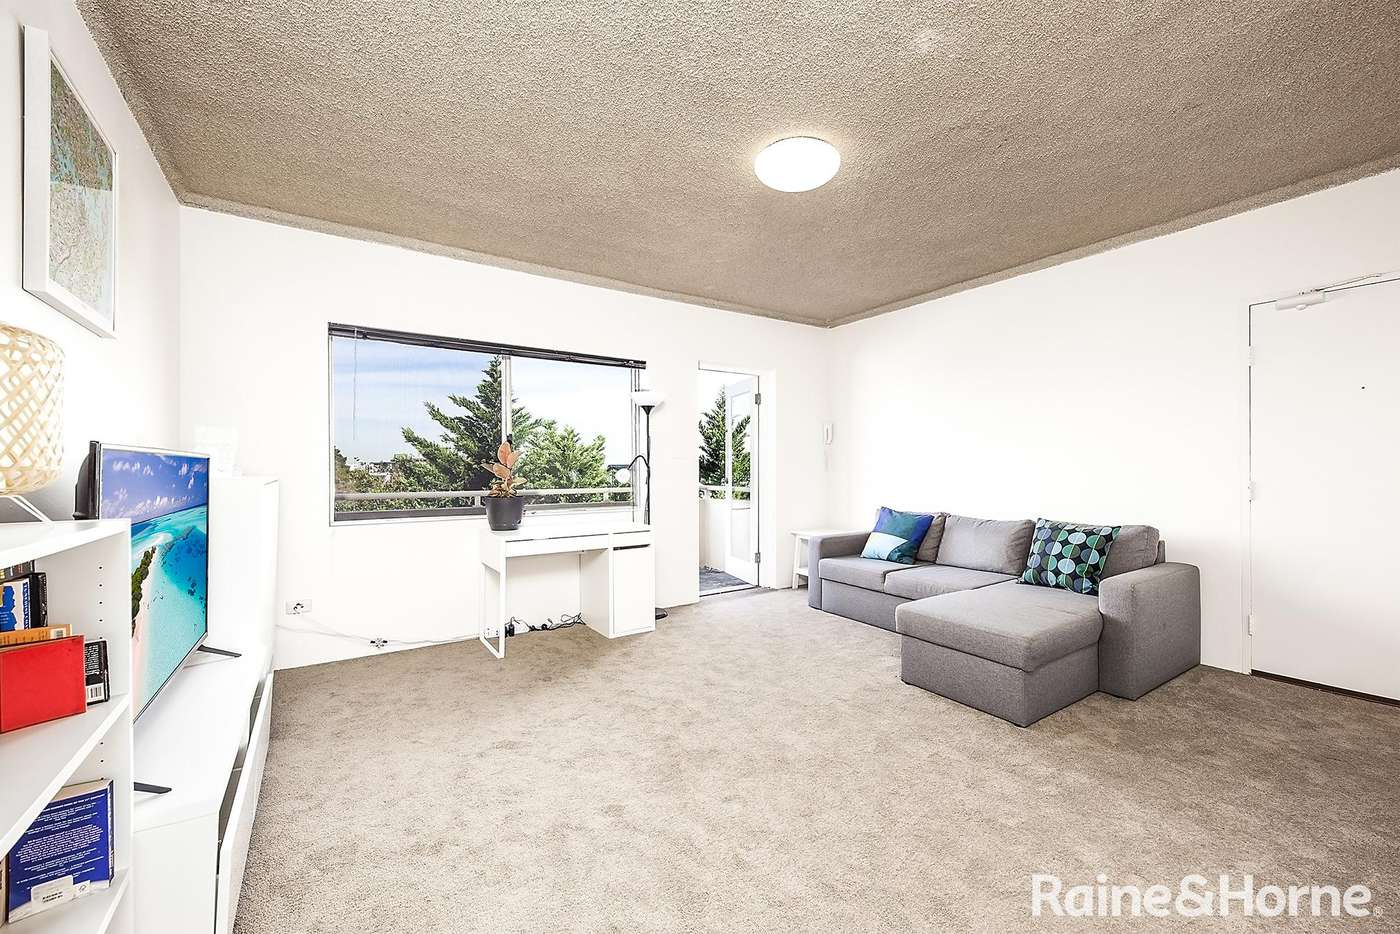 Main view of Homely apartment listing, 11/262 Maroubra Road, Maroubra NSW 2035